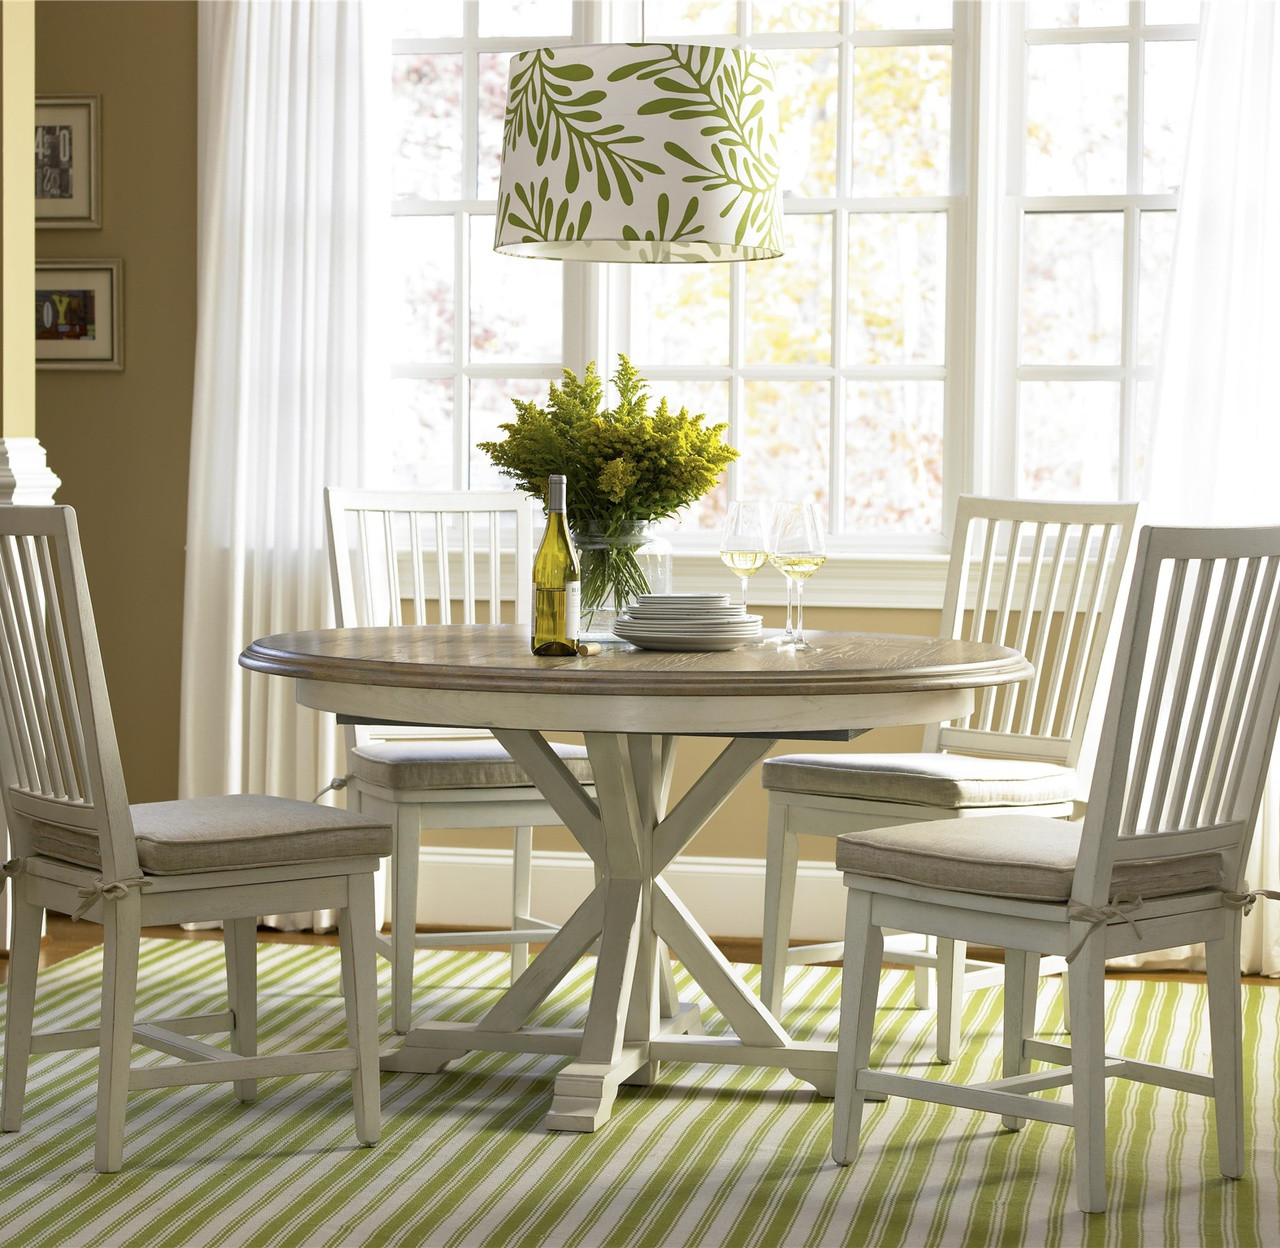 Round White Dining Room Sets Stunning Coastal Tables Photos